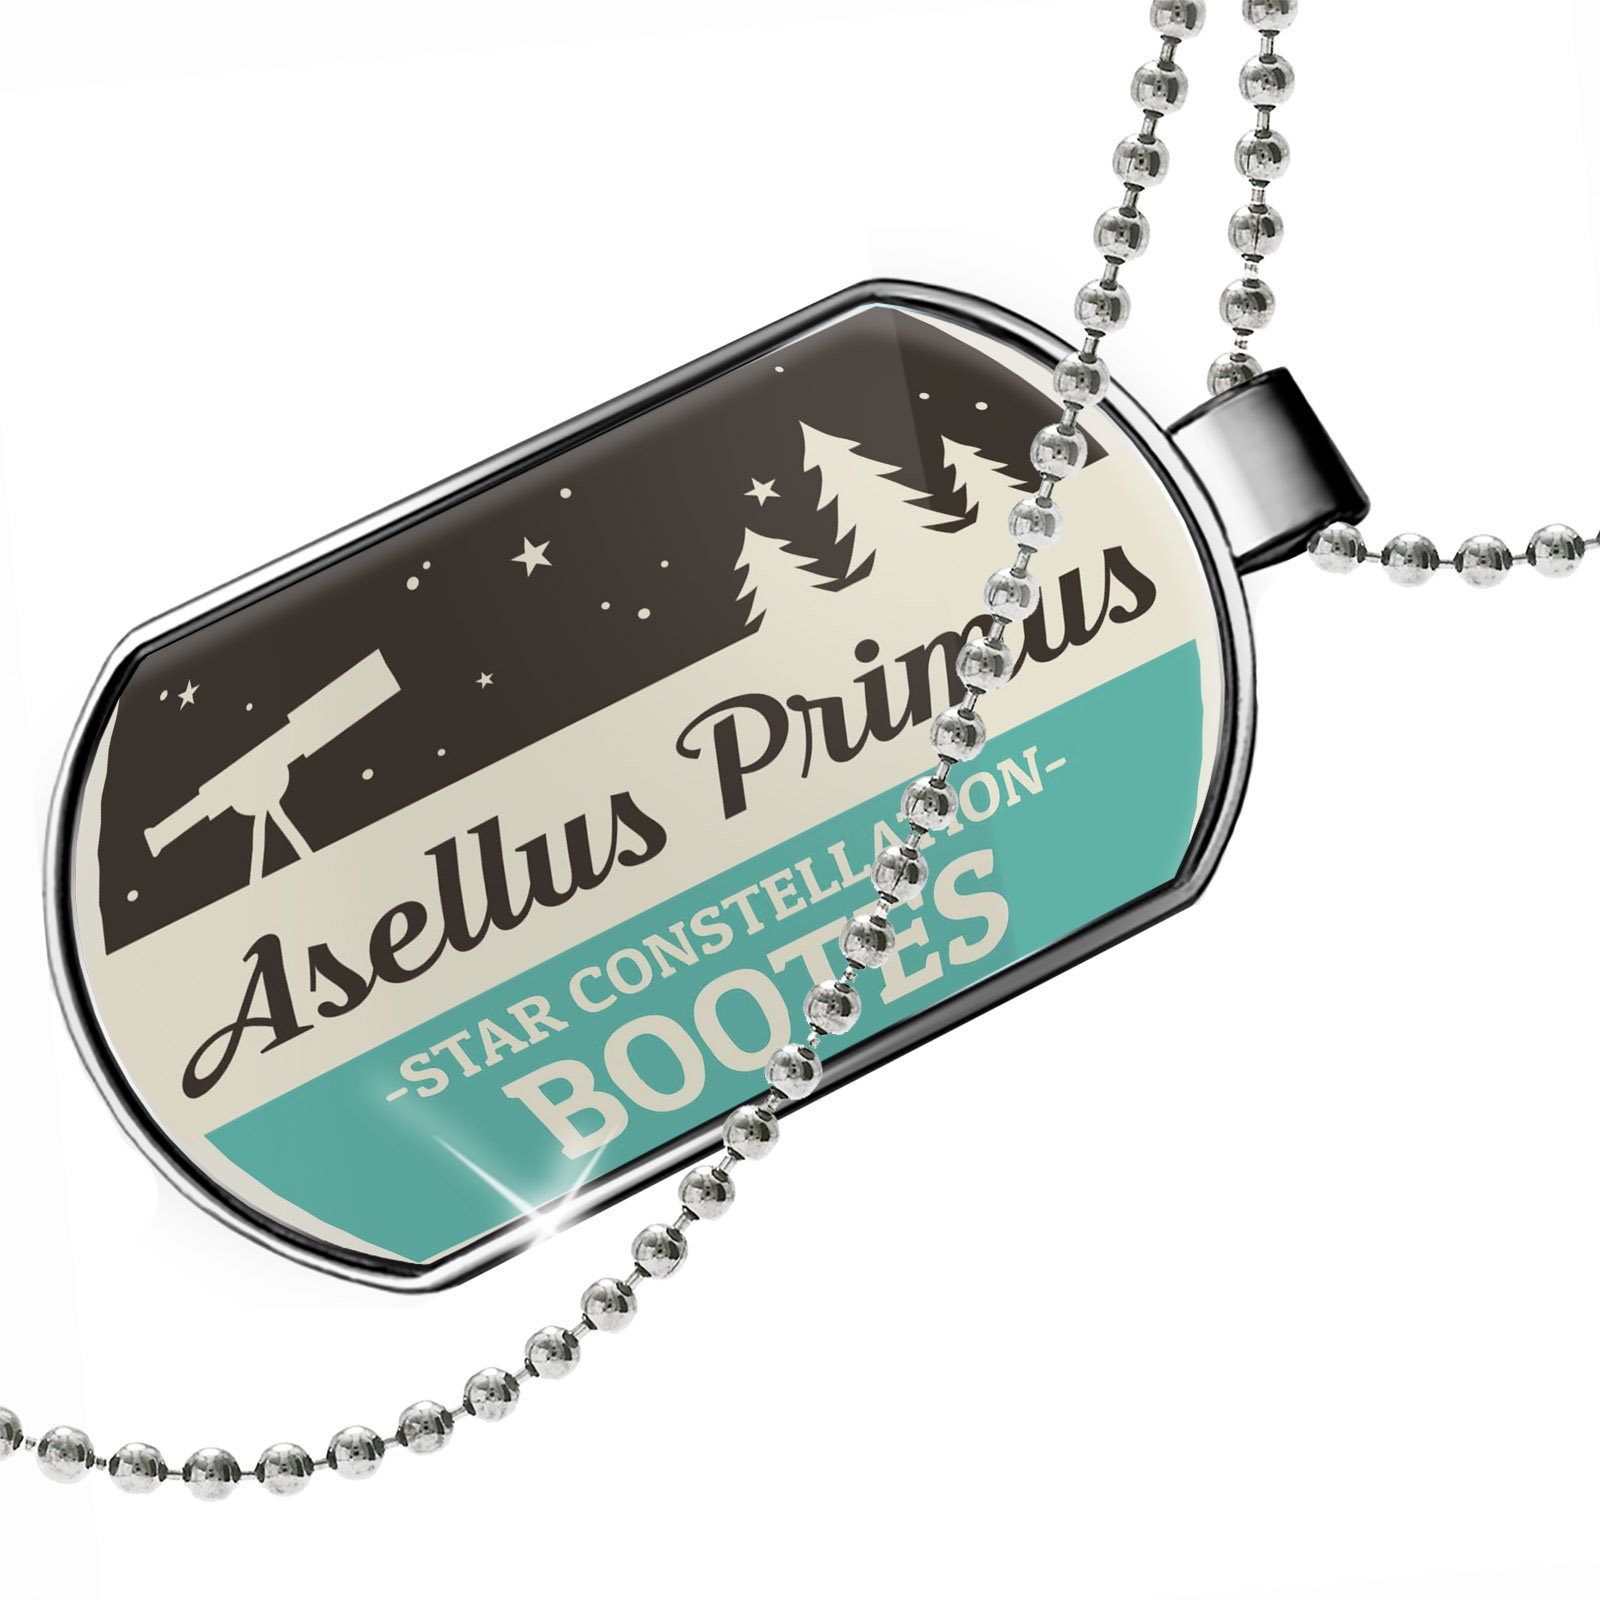 Dogtag Star Constellation Name Bootes - Asellus Primus Dog tags necklace - Neonblond